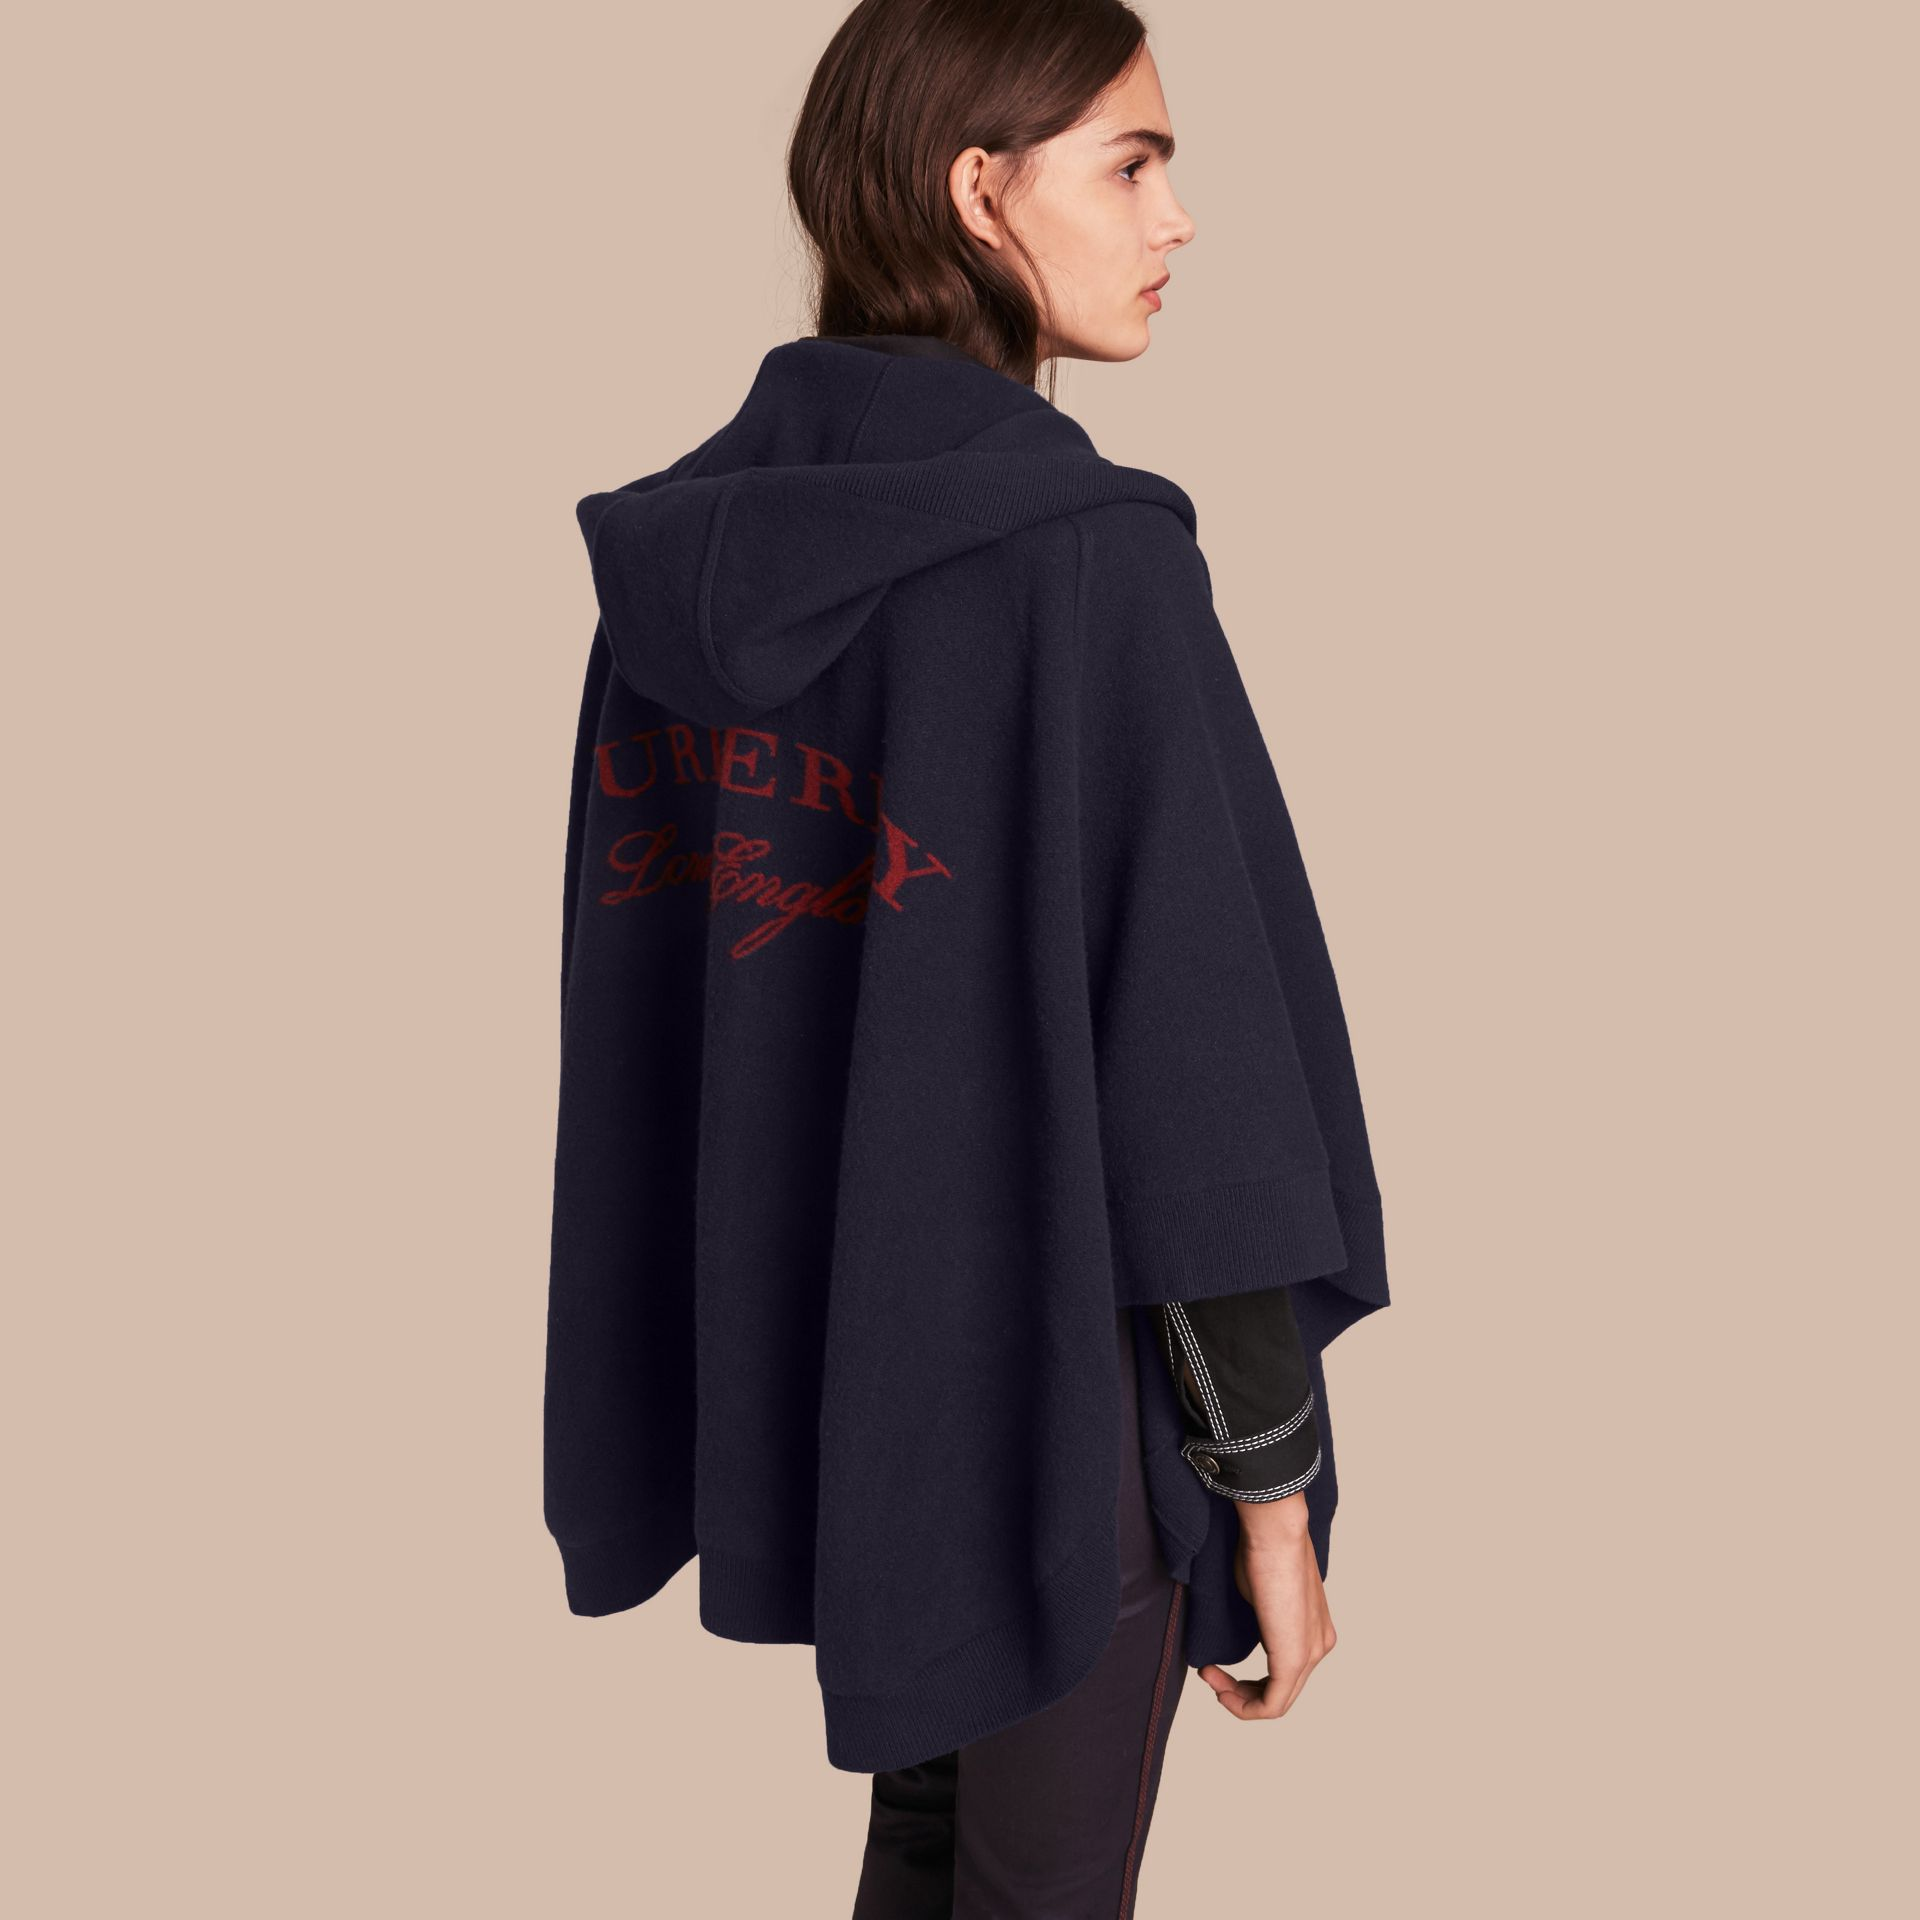 Wool Cashmere Blend Hooded Poncho in Navy/black - Women | Burberry - gallery image 1